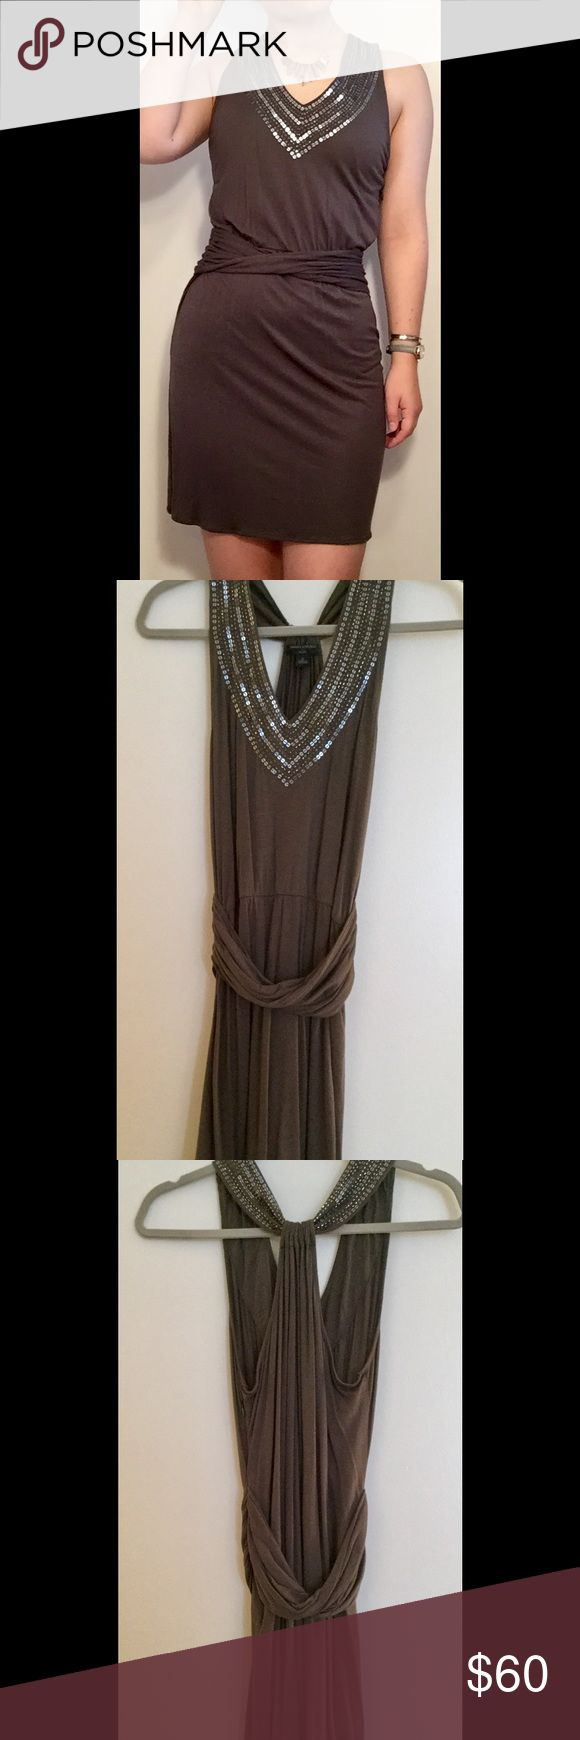 """Banana Republic gray and sequin dress. Gray dress with sequined neckline and twisted band around the waist. Size petite 2 (model is 5'2"""" and normally wears a 0/2). 70% rayon, 30% lyocell. No defects and light wear. Banana Republic Dresses Mini"""